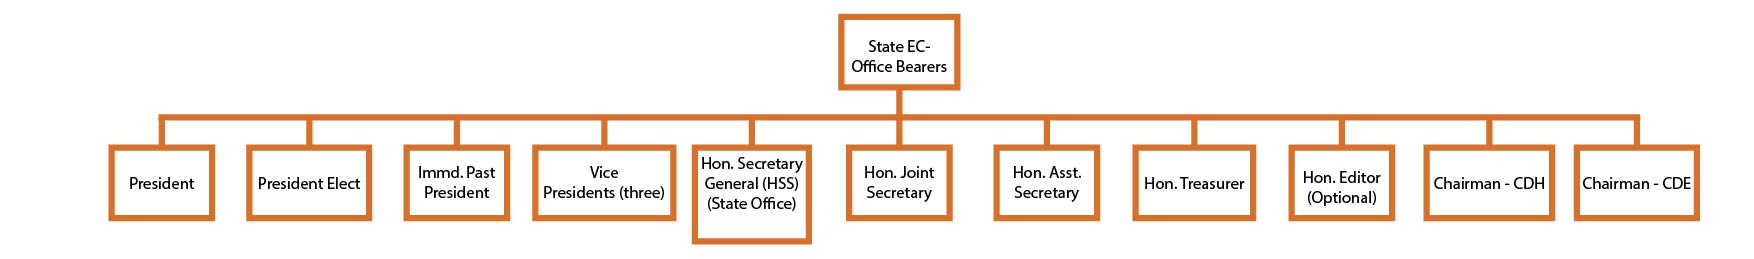 State Executive Council Office Bearers